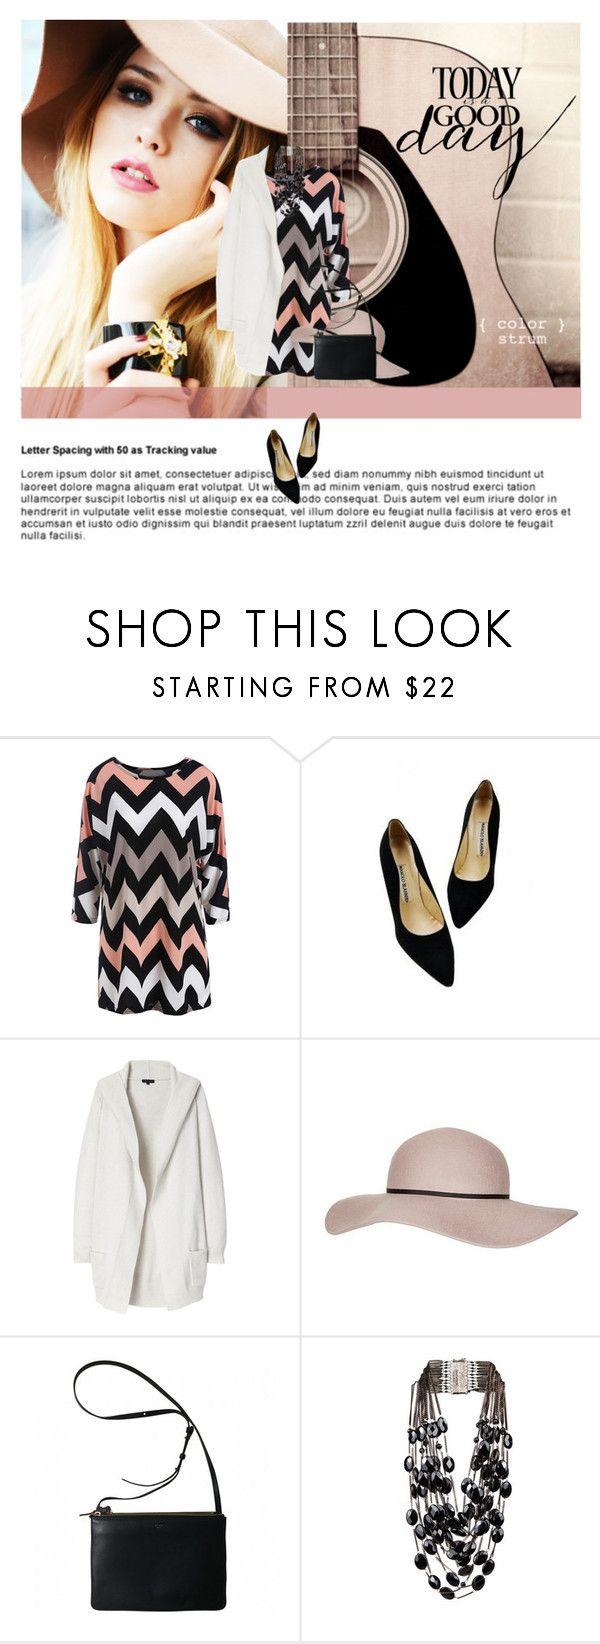 """""""Zig Zag Dress"""" by colierollers ❤ liked on Polyvore featuring Theory, Topshop, Rosantica, women's clothing, women's fashion, women, female, woman, misses and juniors"""